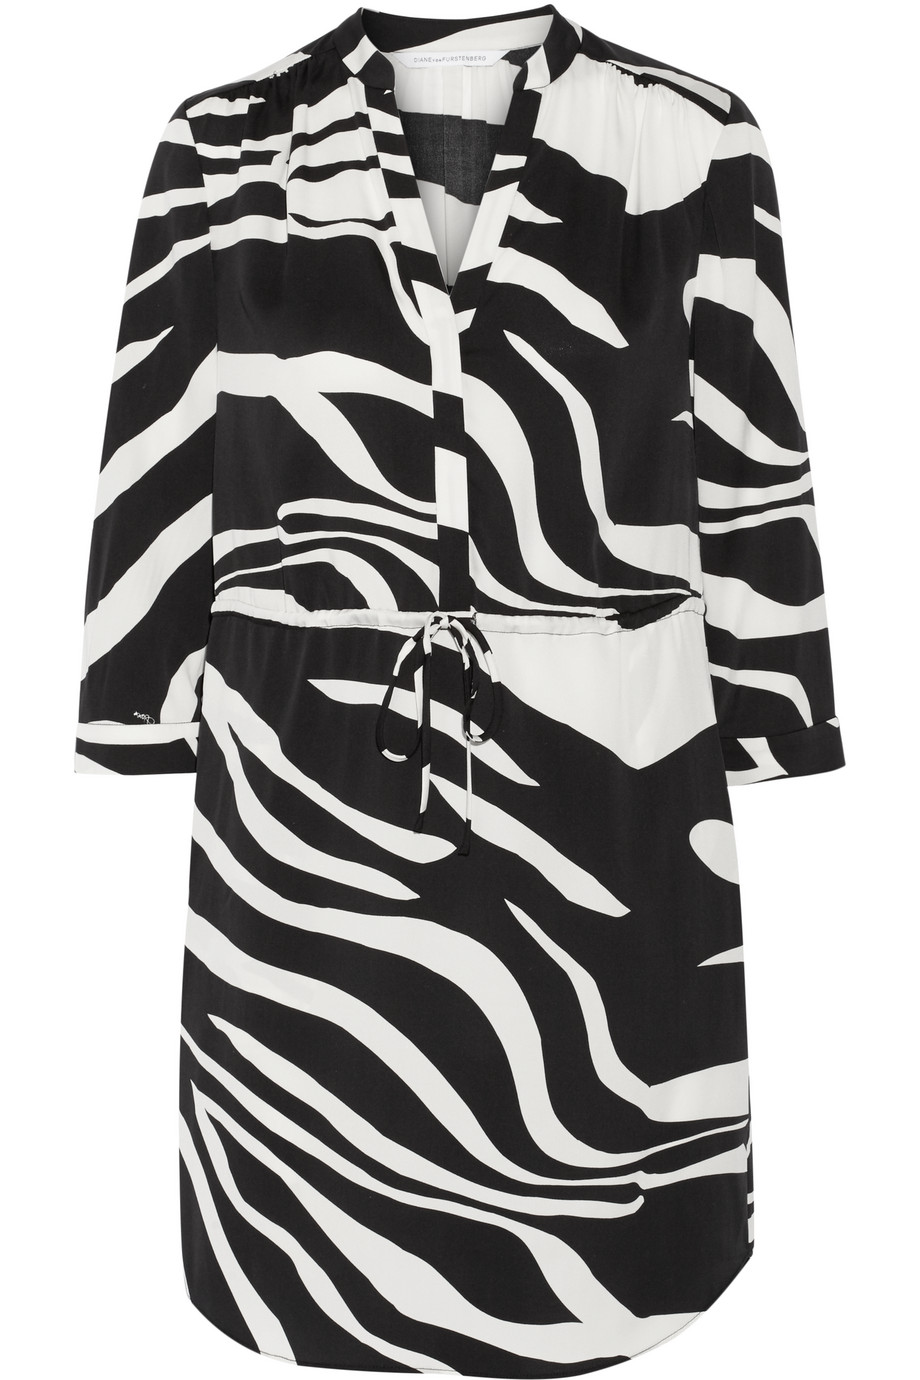 Diane Von Furstenberg Freya Zebra-Print Stretch-Silk Dress, Black/White, Women's - Printed, Size: 12